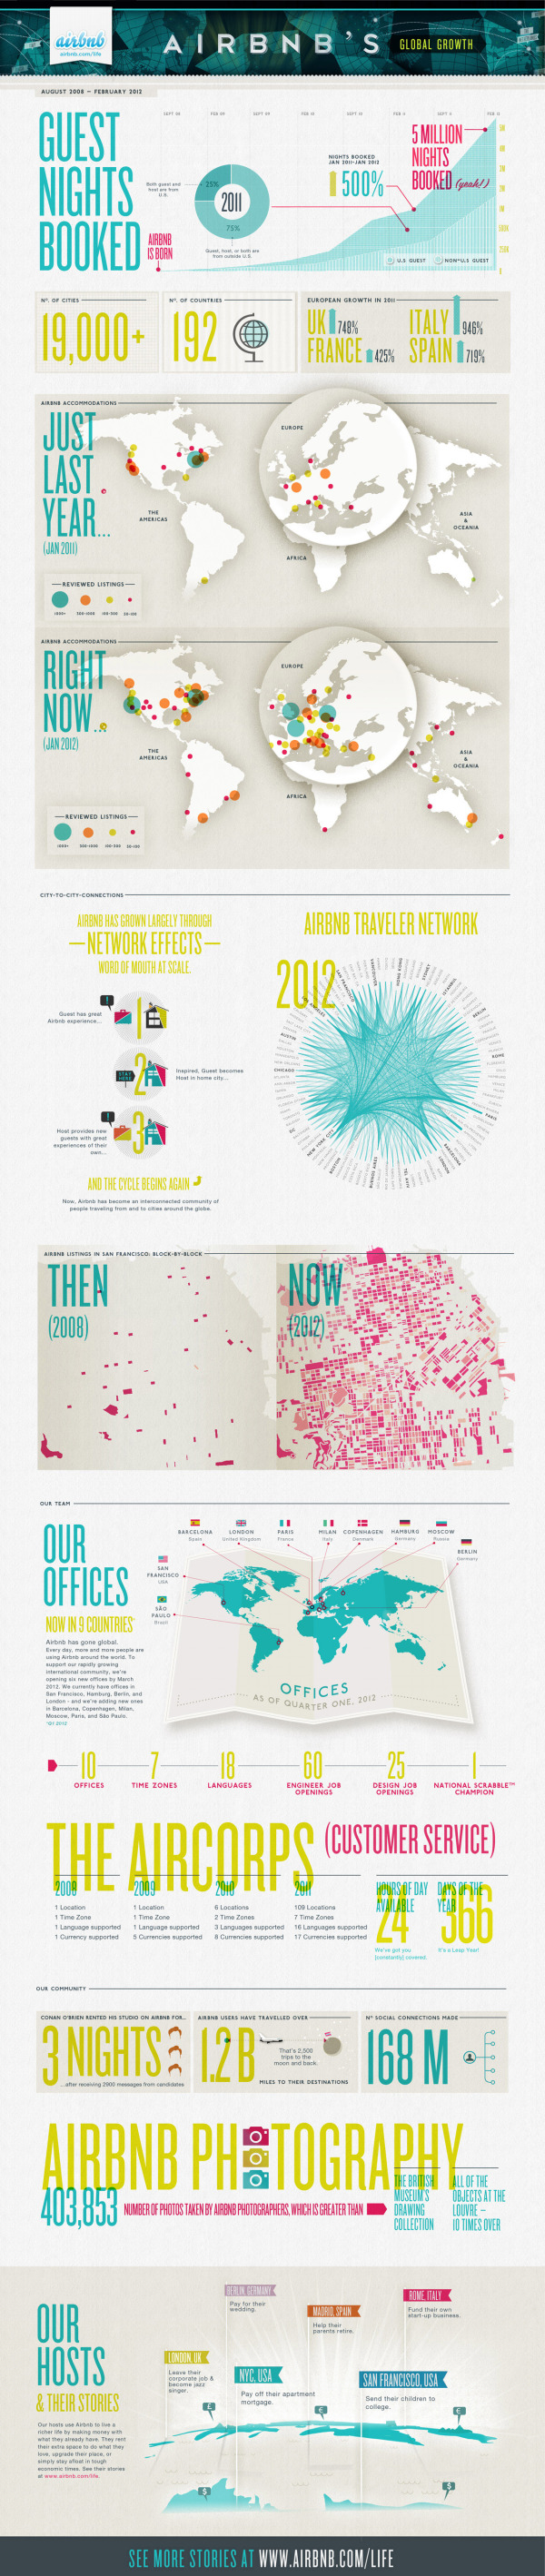 Airbnb's Global Growth infographic